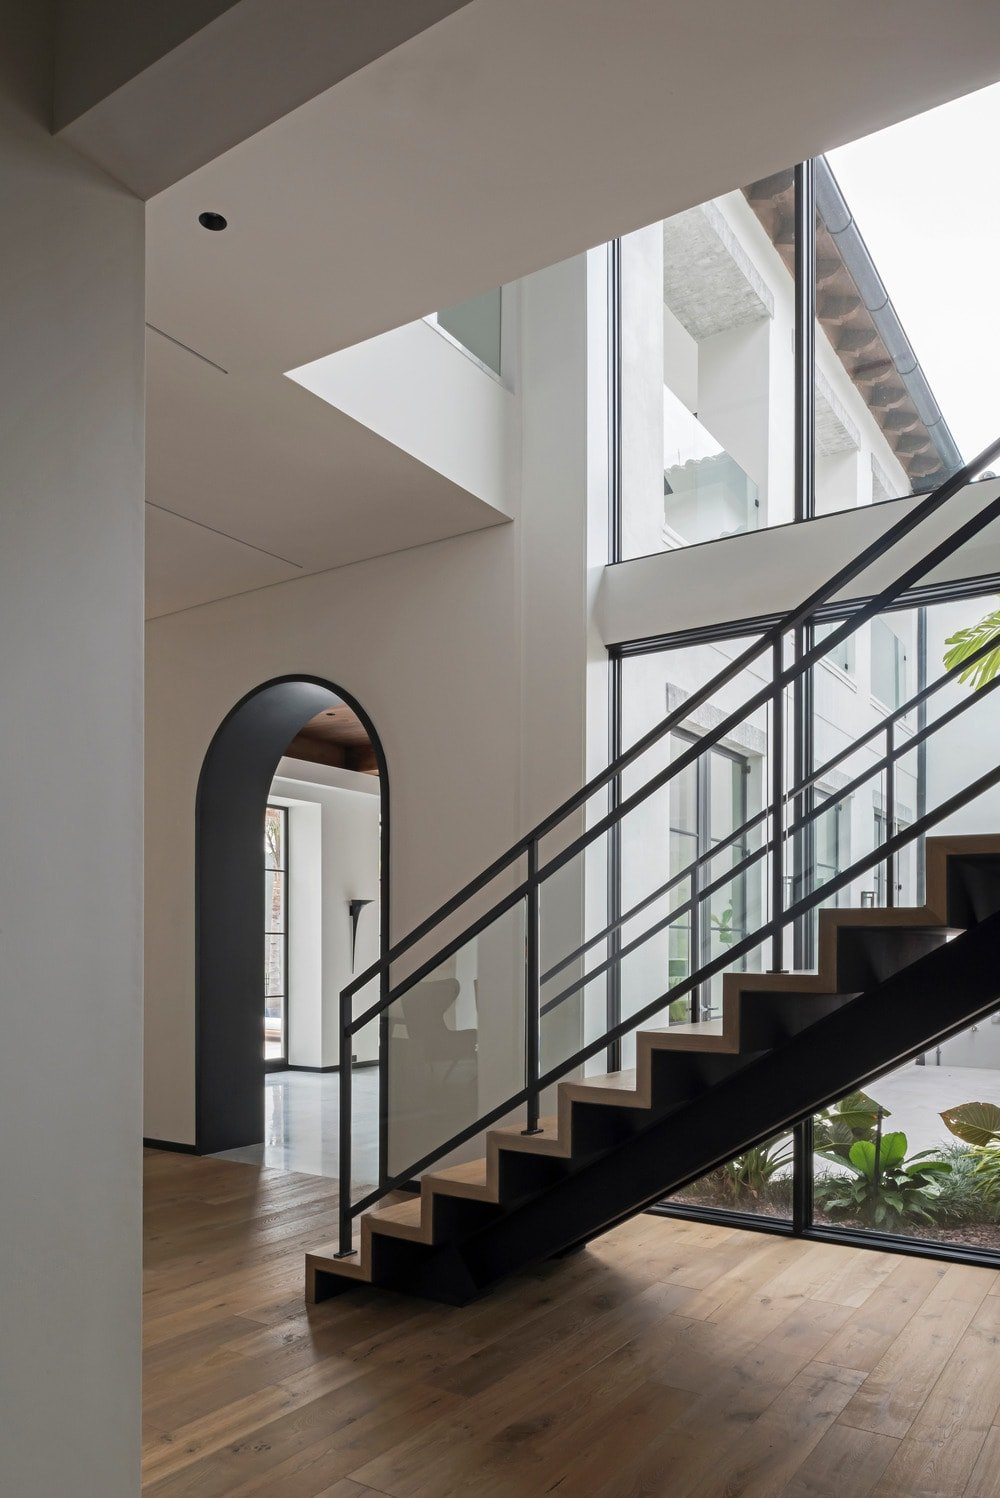 This is a closer look at the staircase that has black elements illuminated by the large glass wall that spans two floors giving a view of the patio outside.